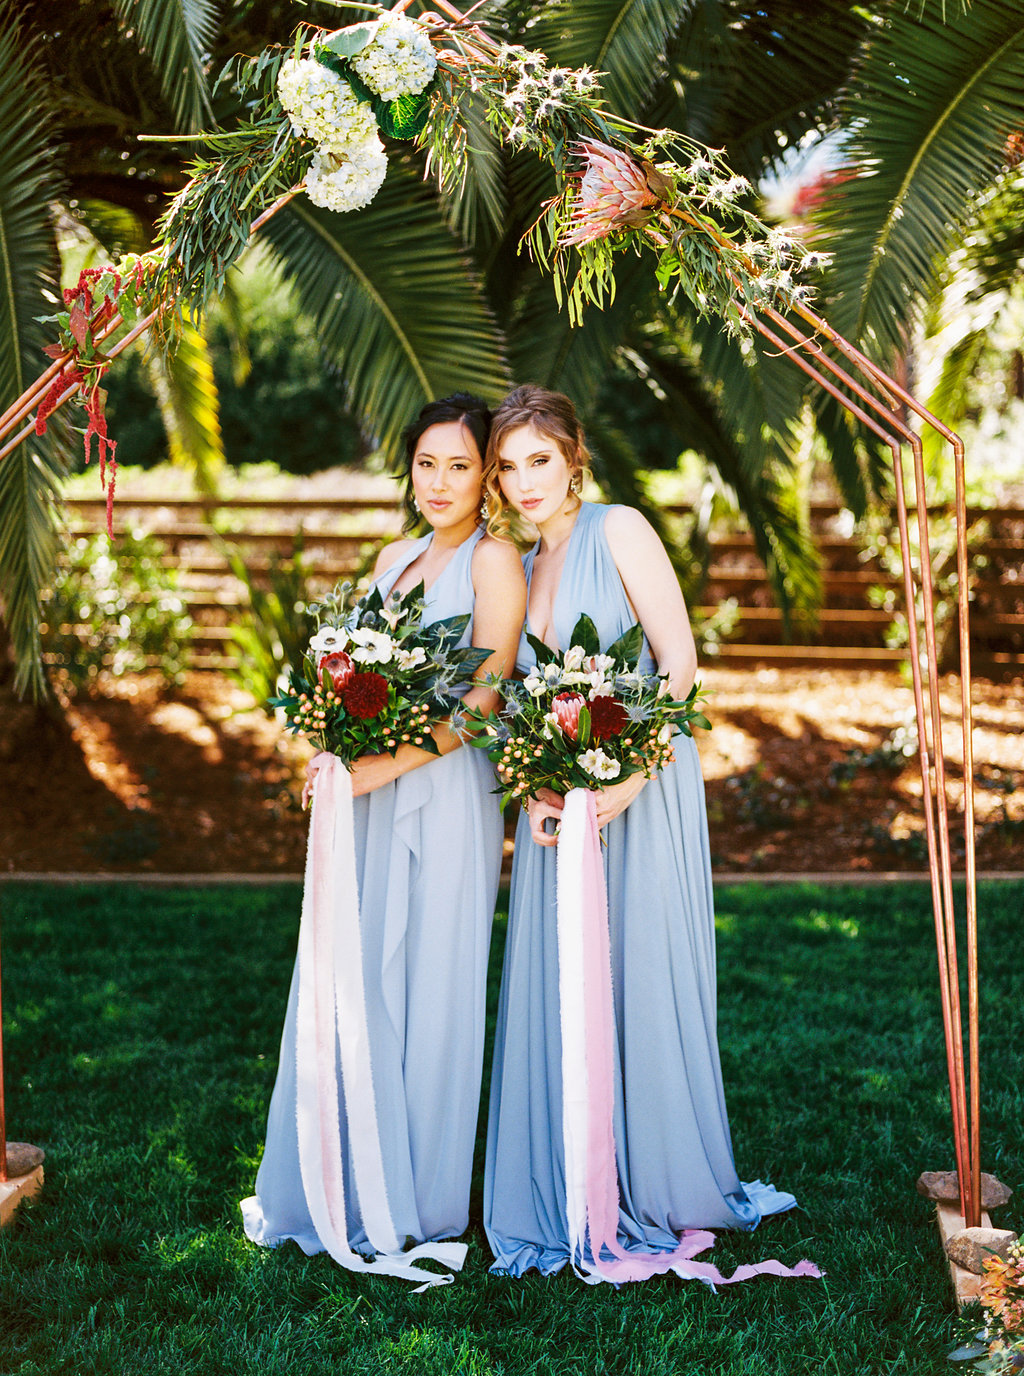 Light Blue Bridesmaid Dresses with Gorgeous Floral Bouquets that has long and flowy silk ribbons